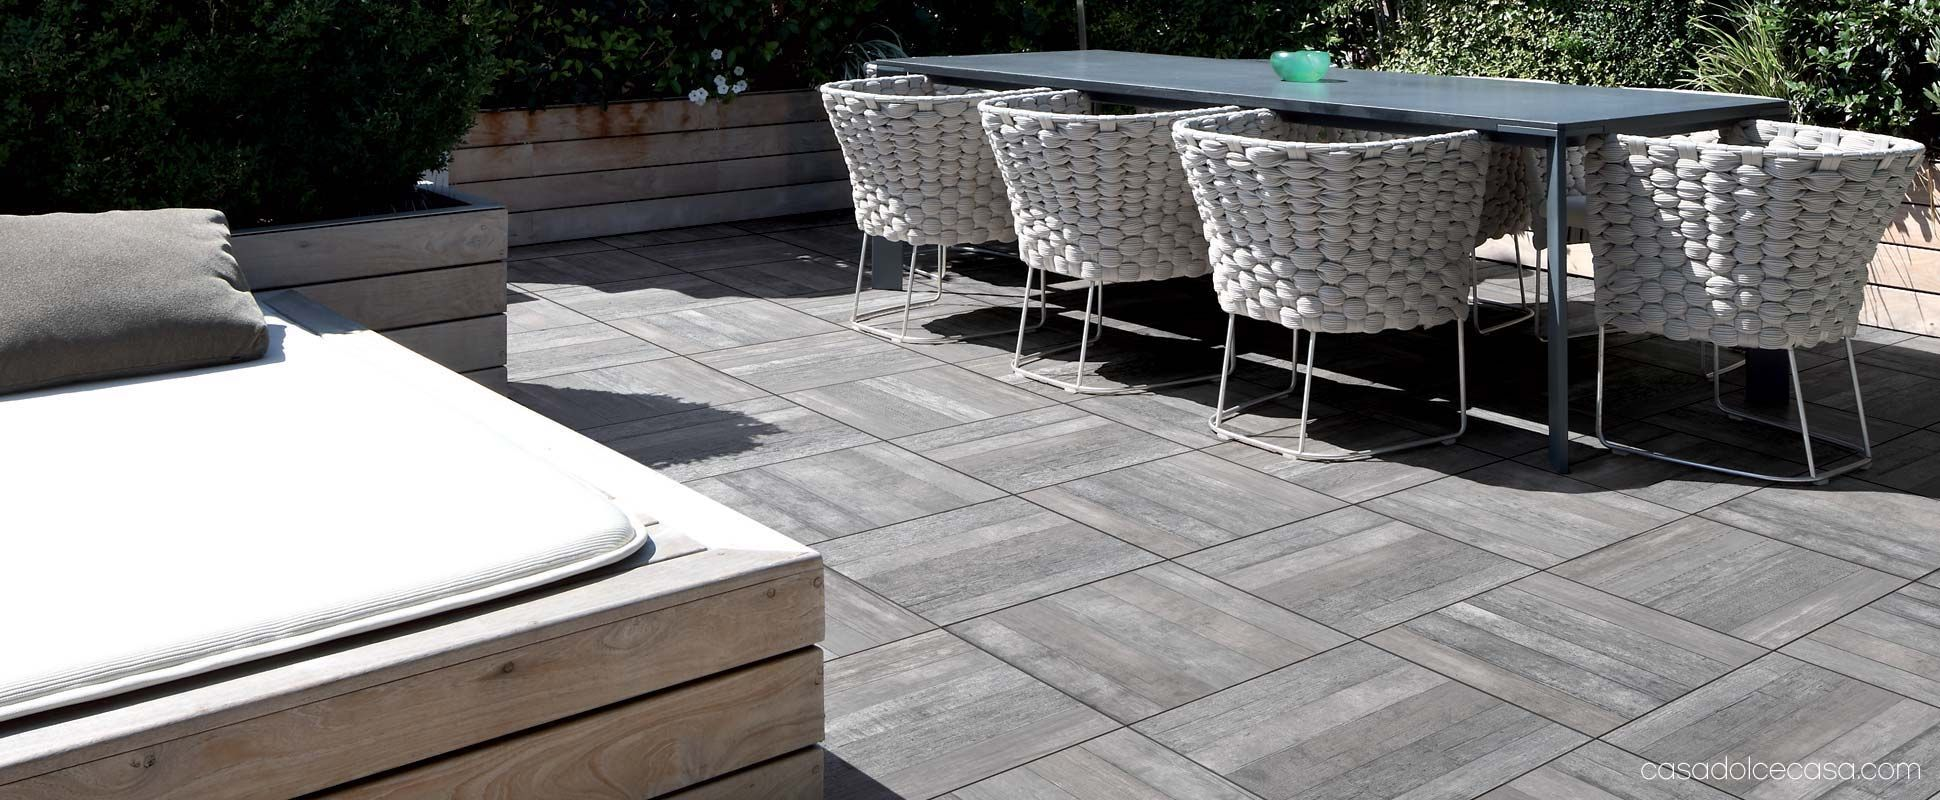 Self Laying Wood Effect Floor Tiles For Outside Floors: Icon Outdoor